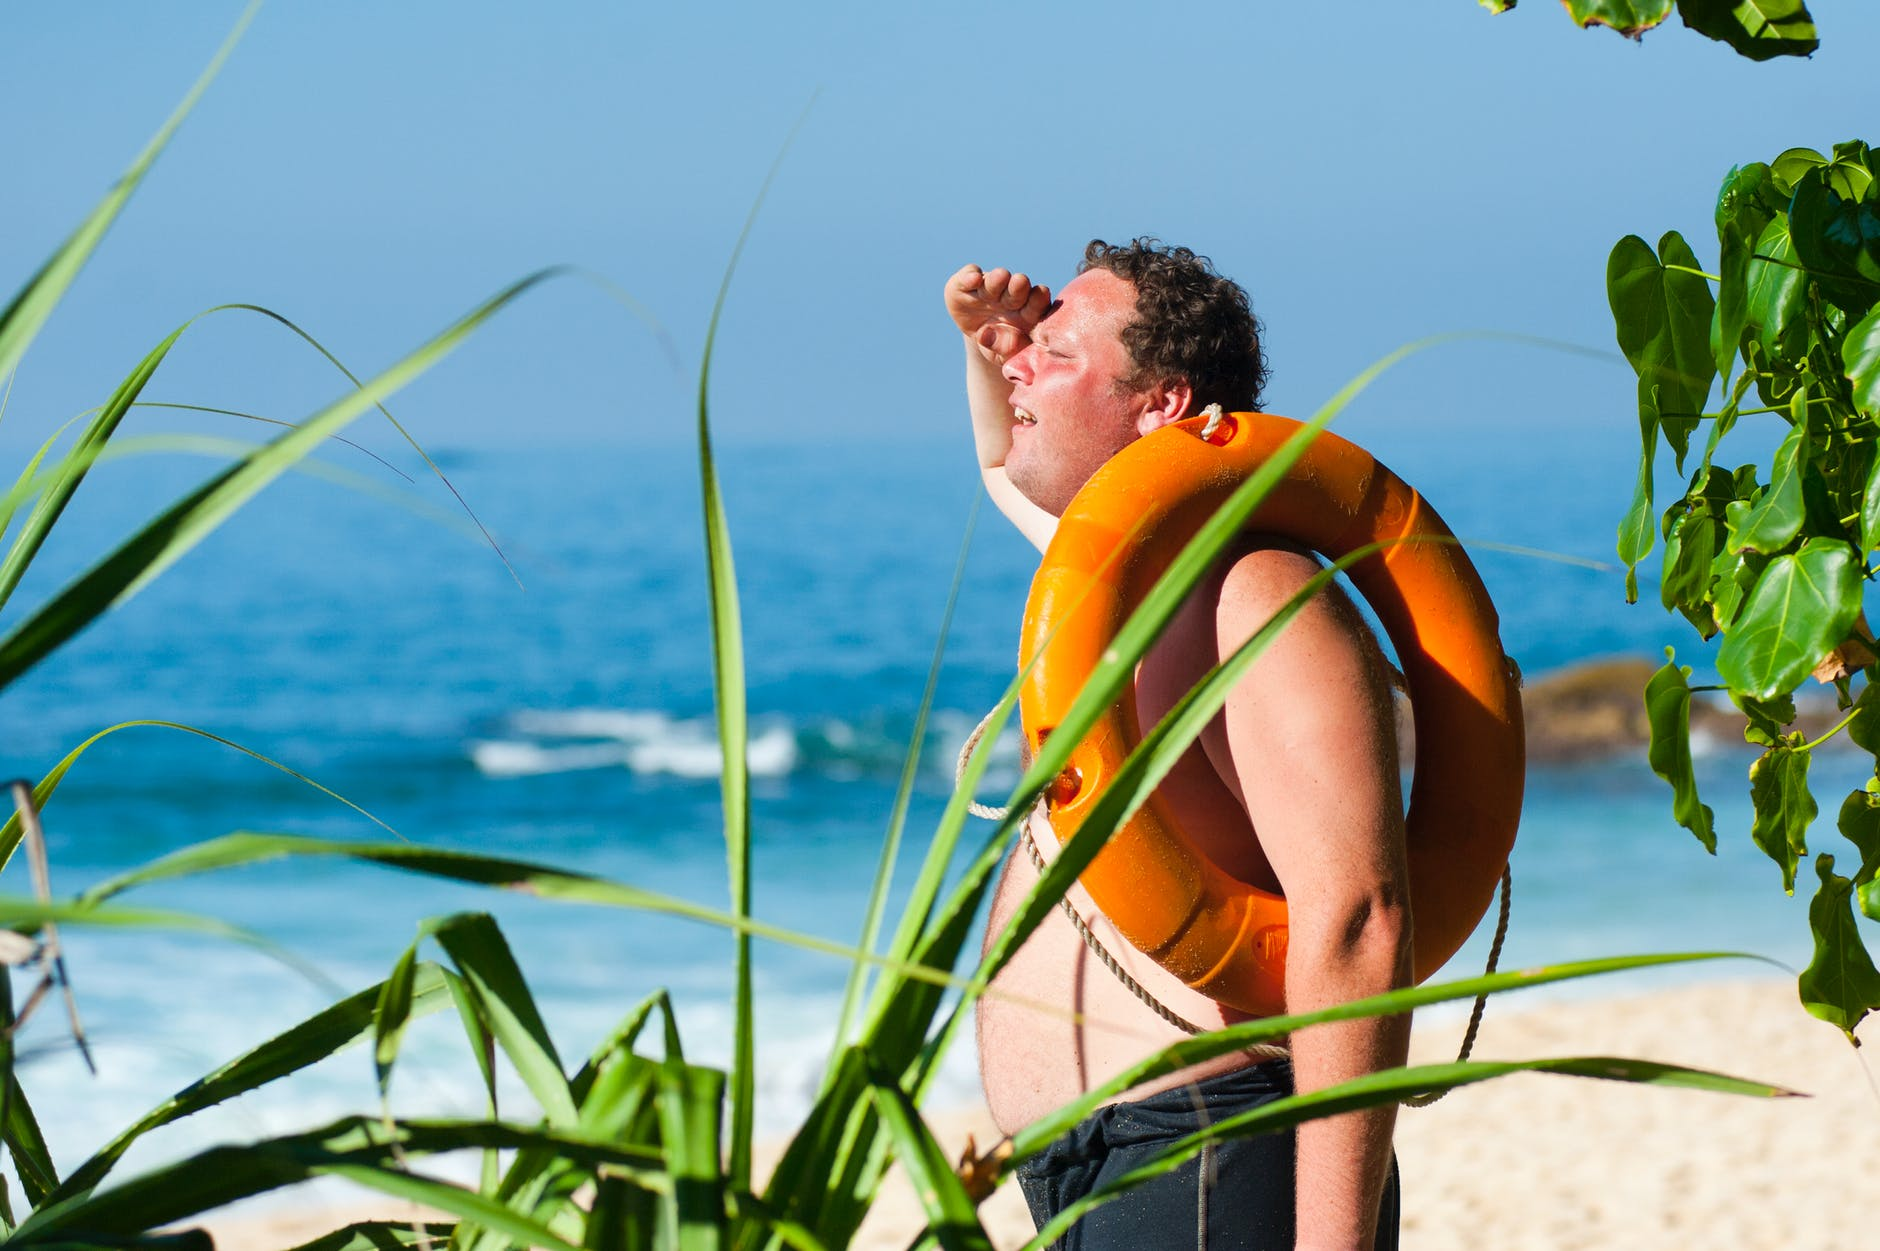 How to keep cool and healthy in hot weather